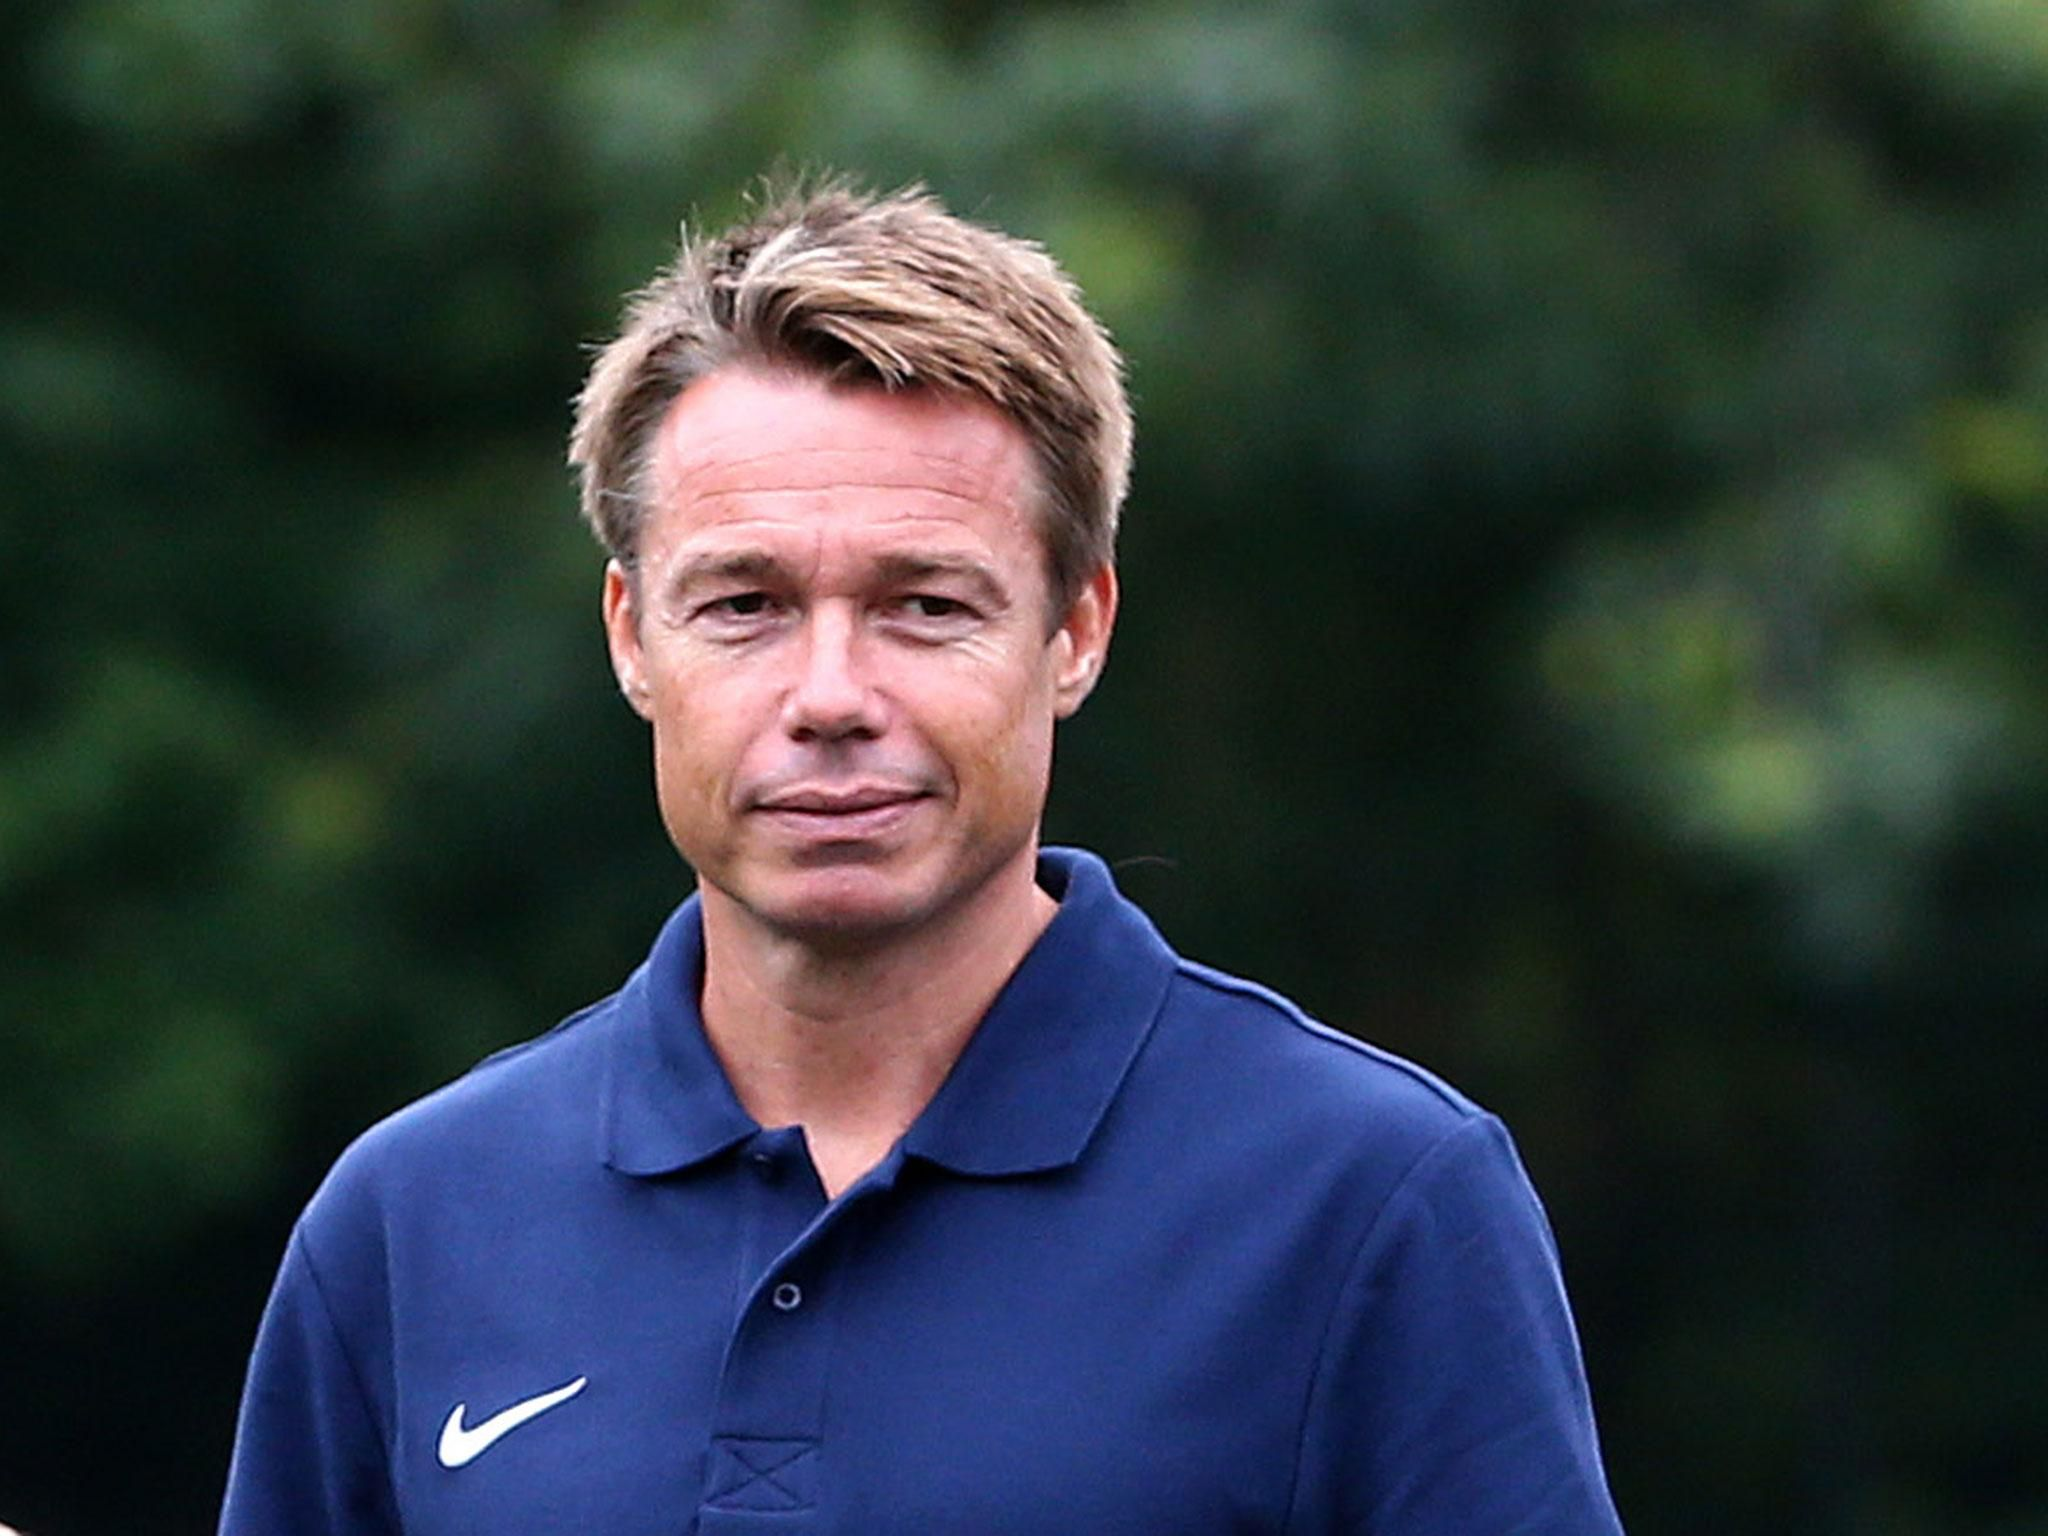 Graeme Le Saux Expected To Help Consult Fa With England Manager Selection Process The Independent World Football English Premier League Graeme Le Saux